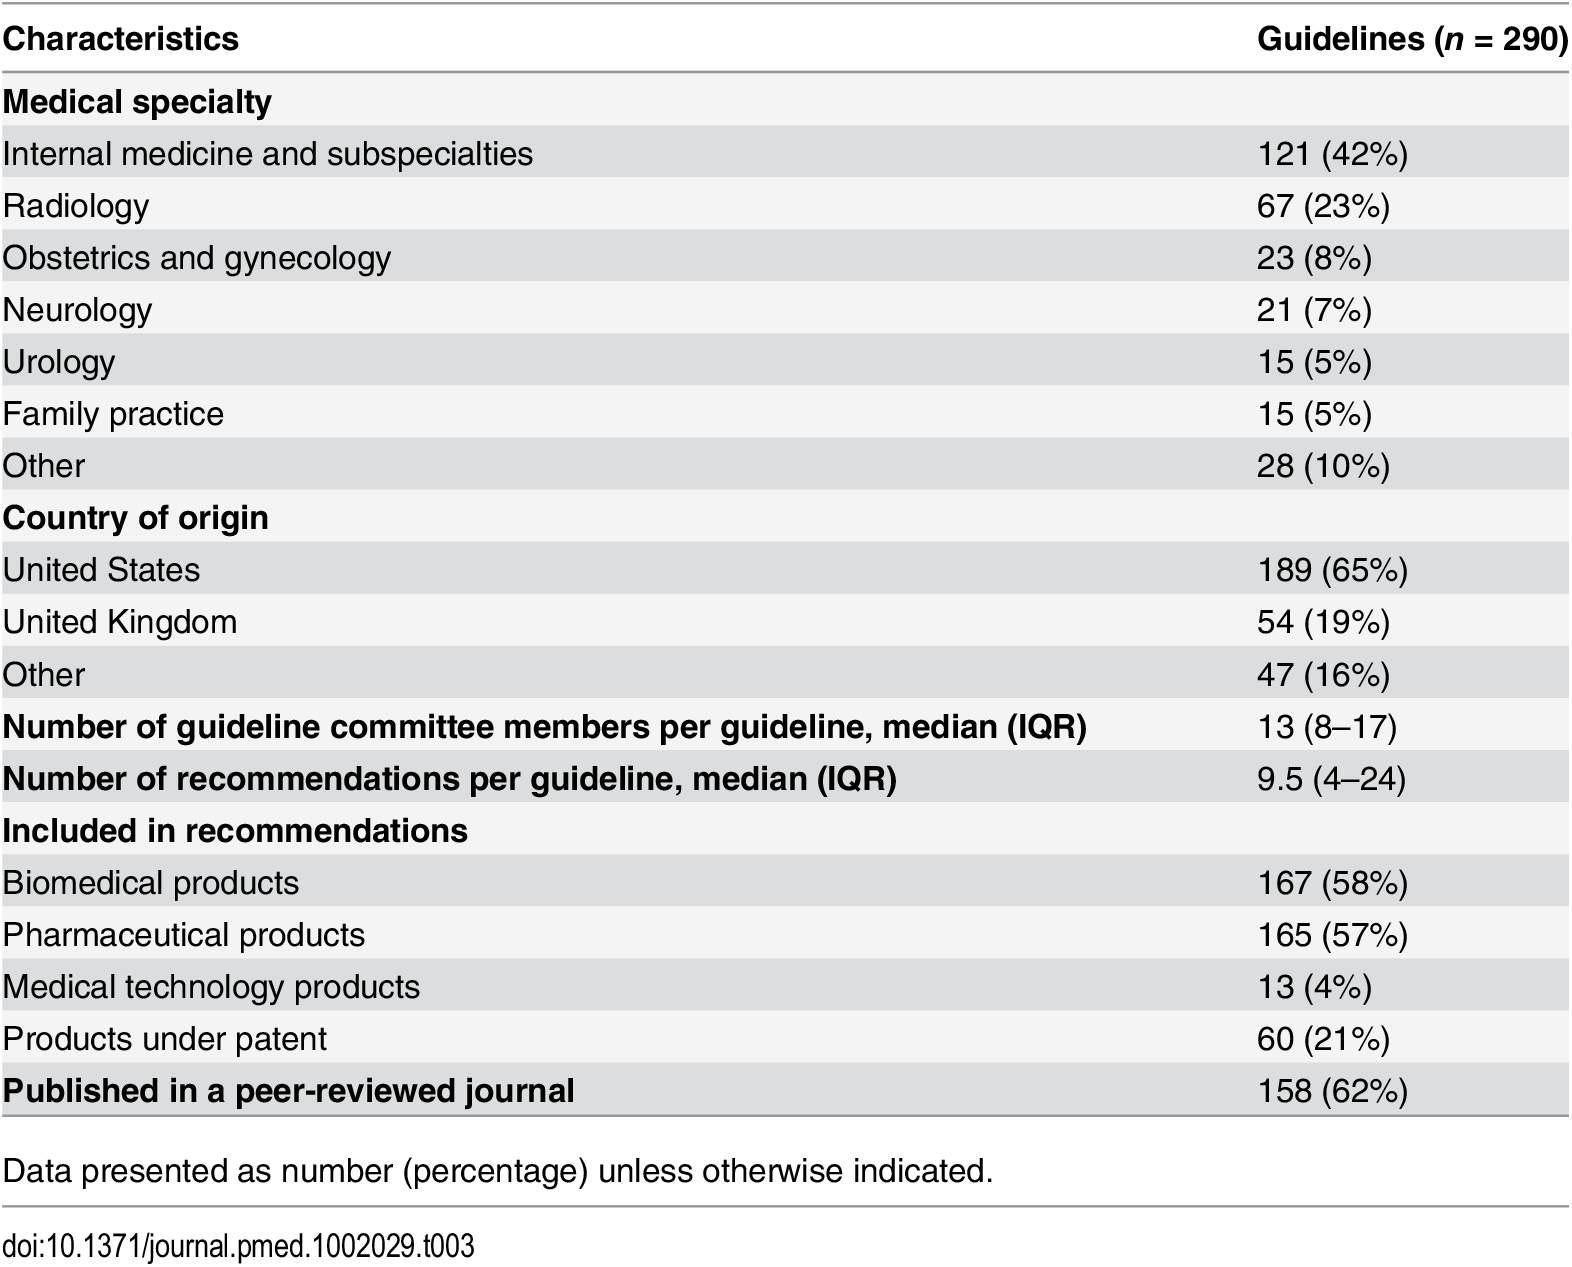 Characteristics of the clinical practice guidelines.